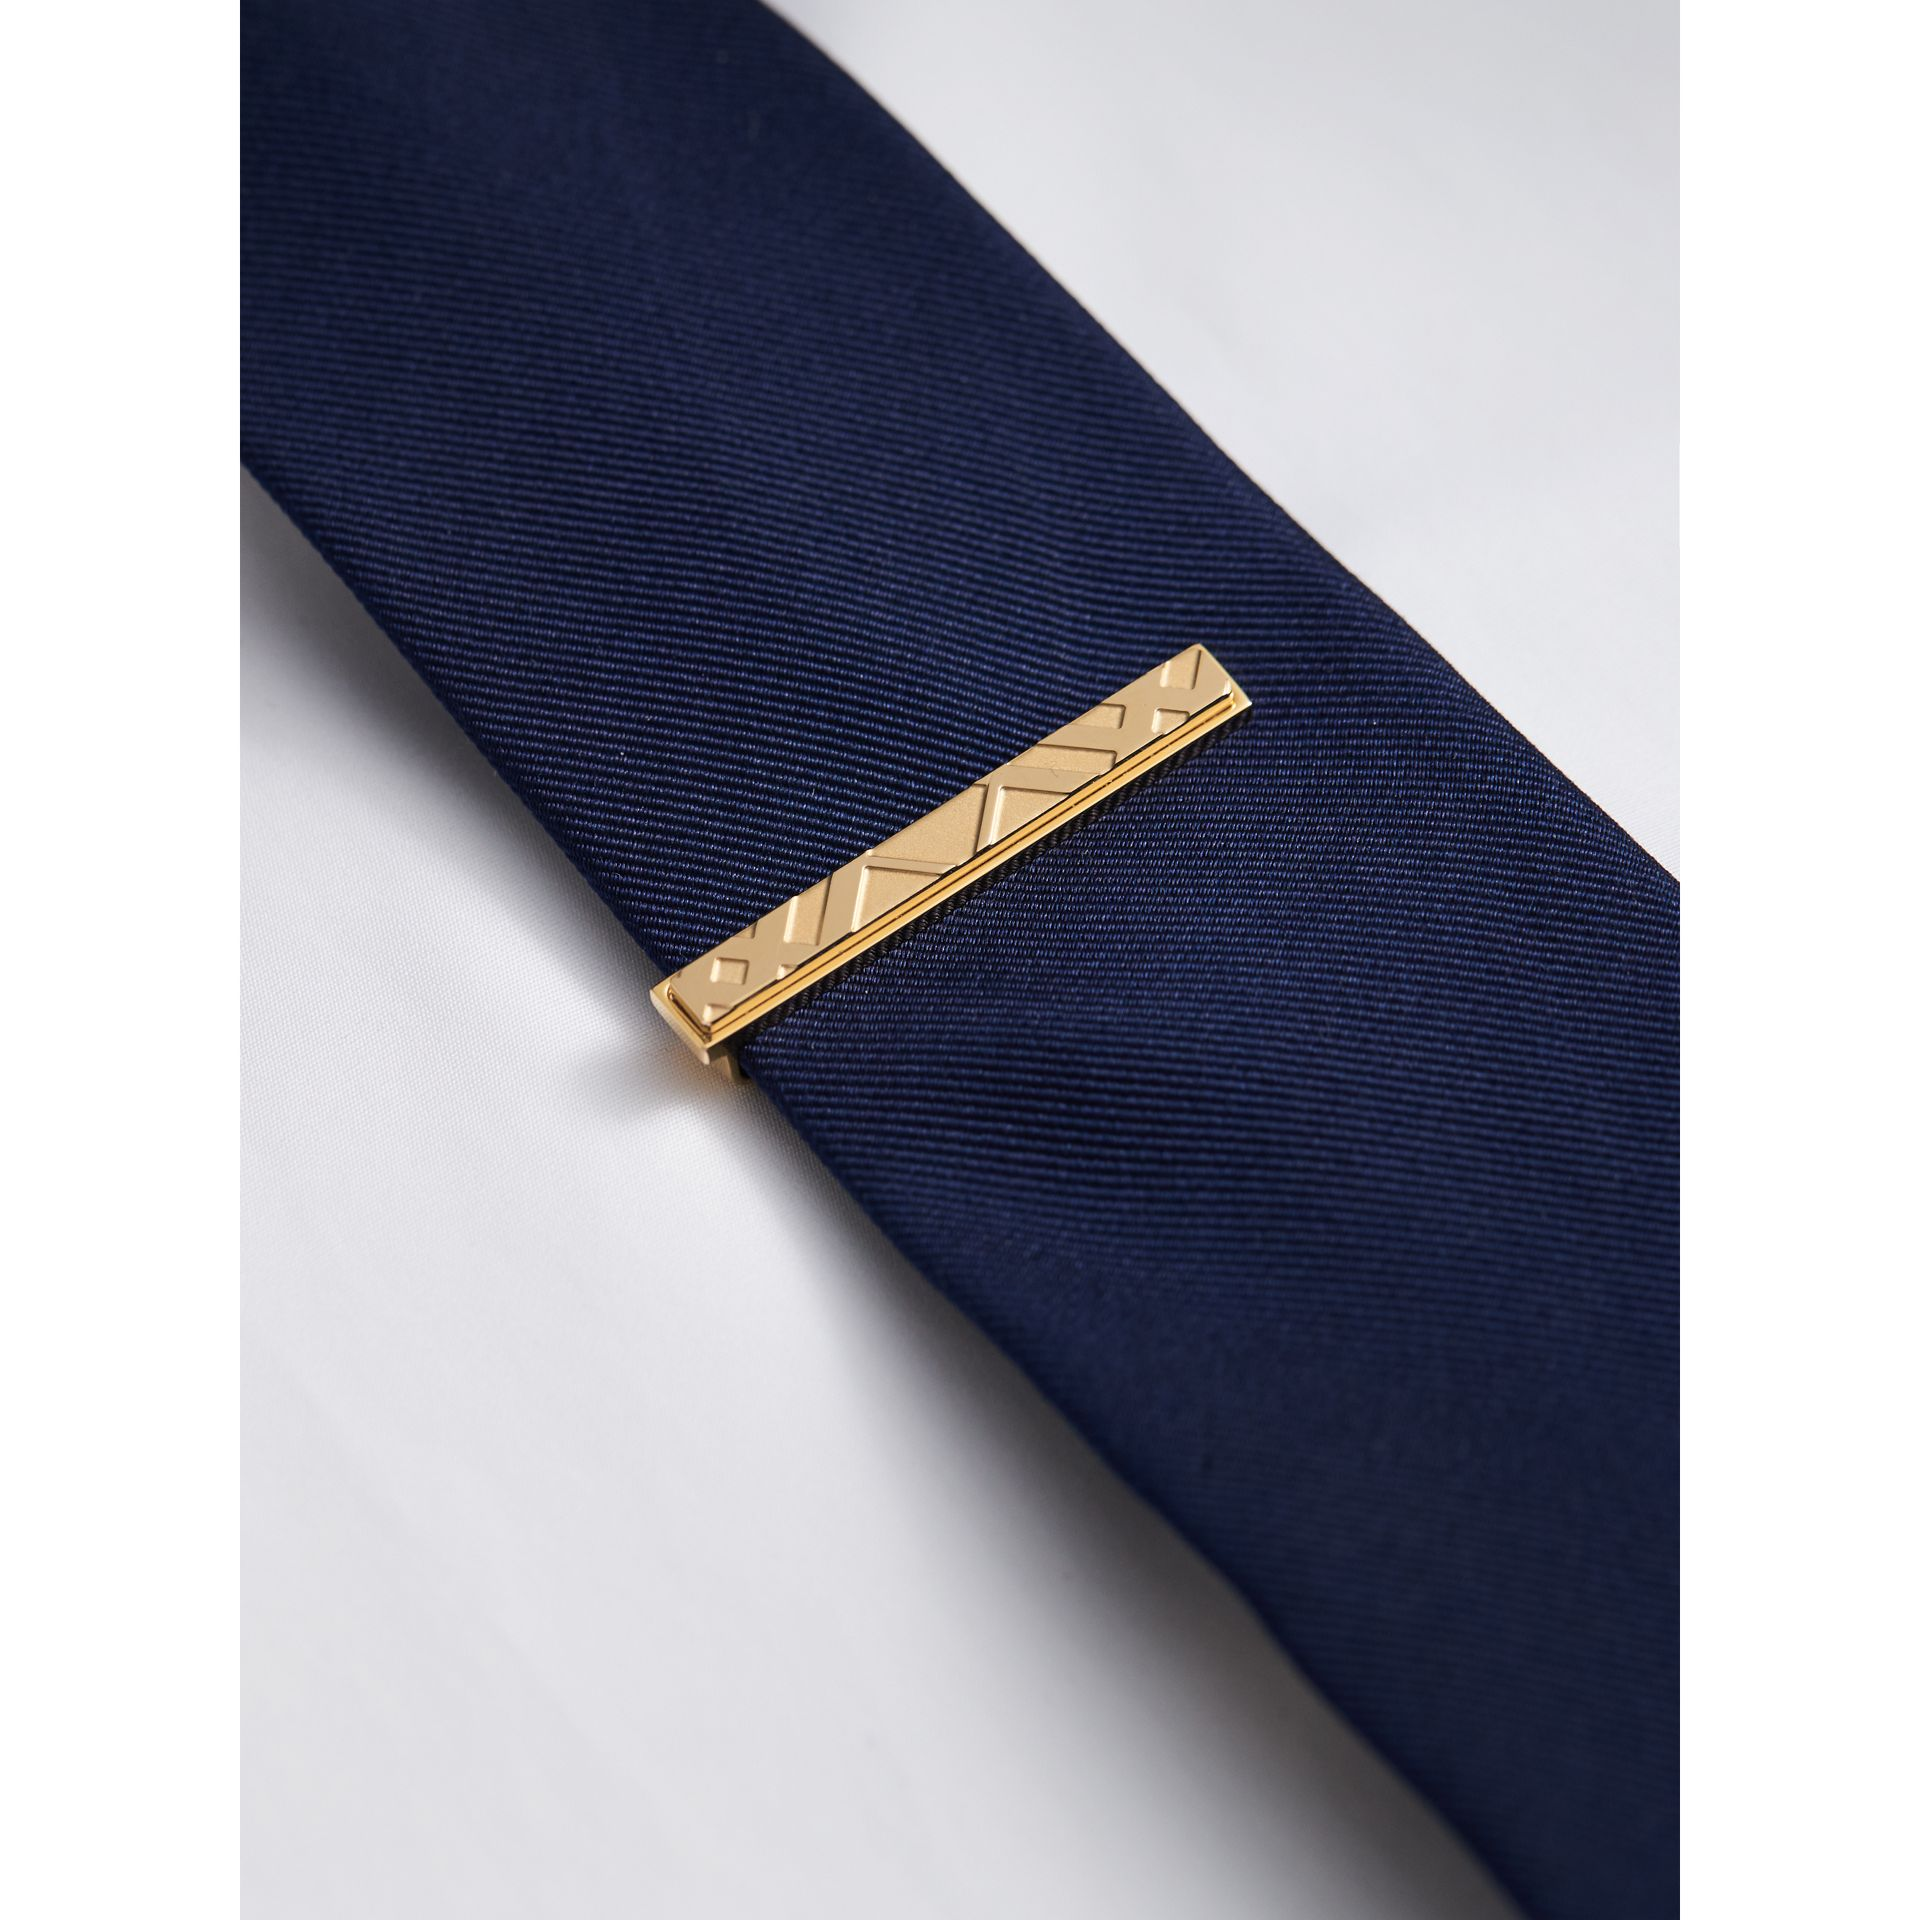 Check-engraved Tie Bar in Pale Gold - Men | Burberry Singapore - gallery image 2